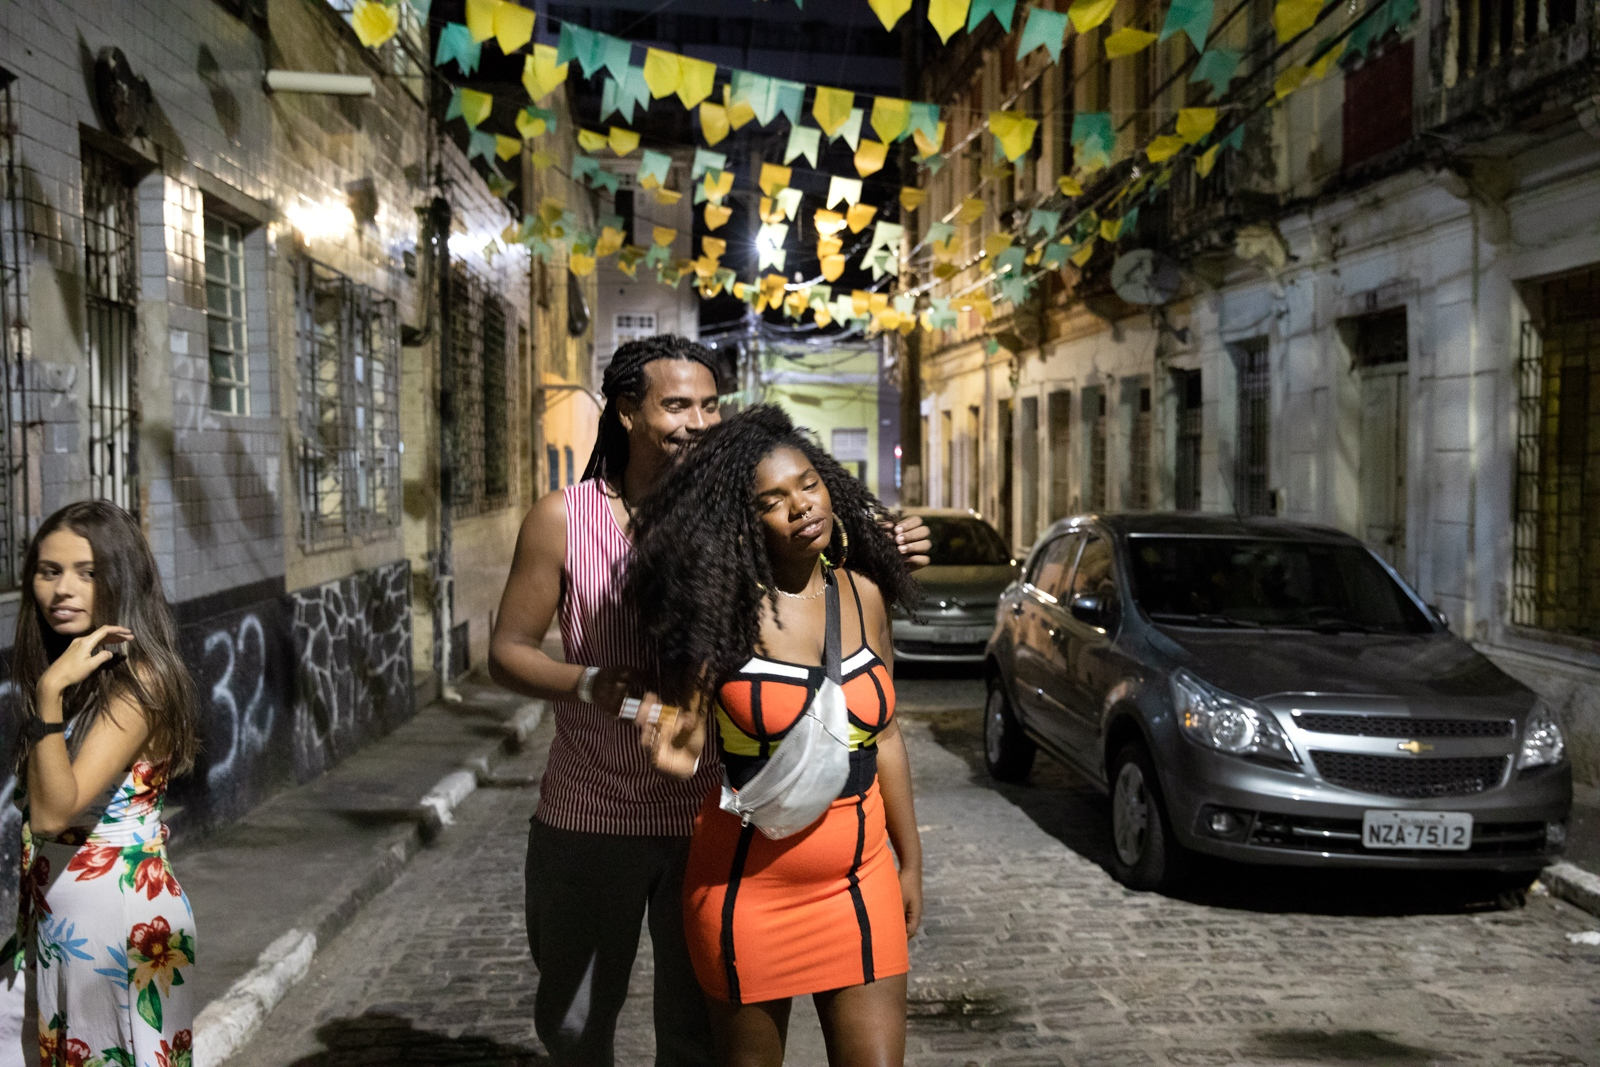 Friends in the streets in front of a Batekoo party in Salvador.